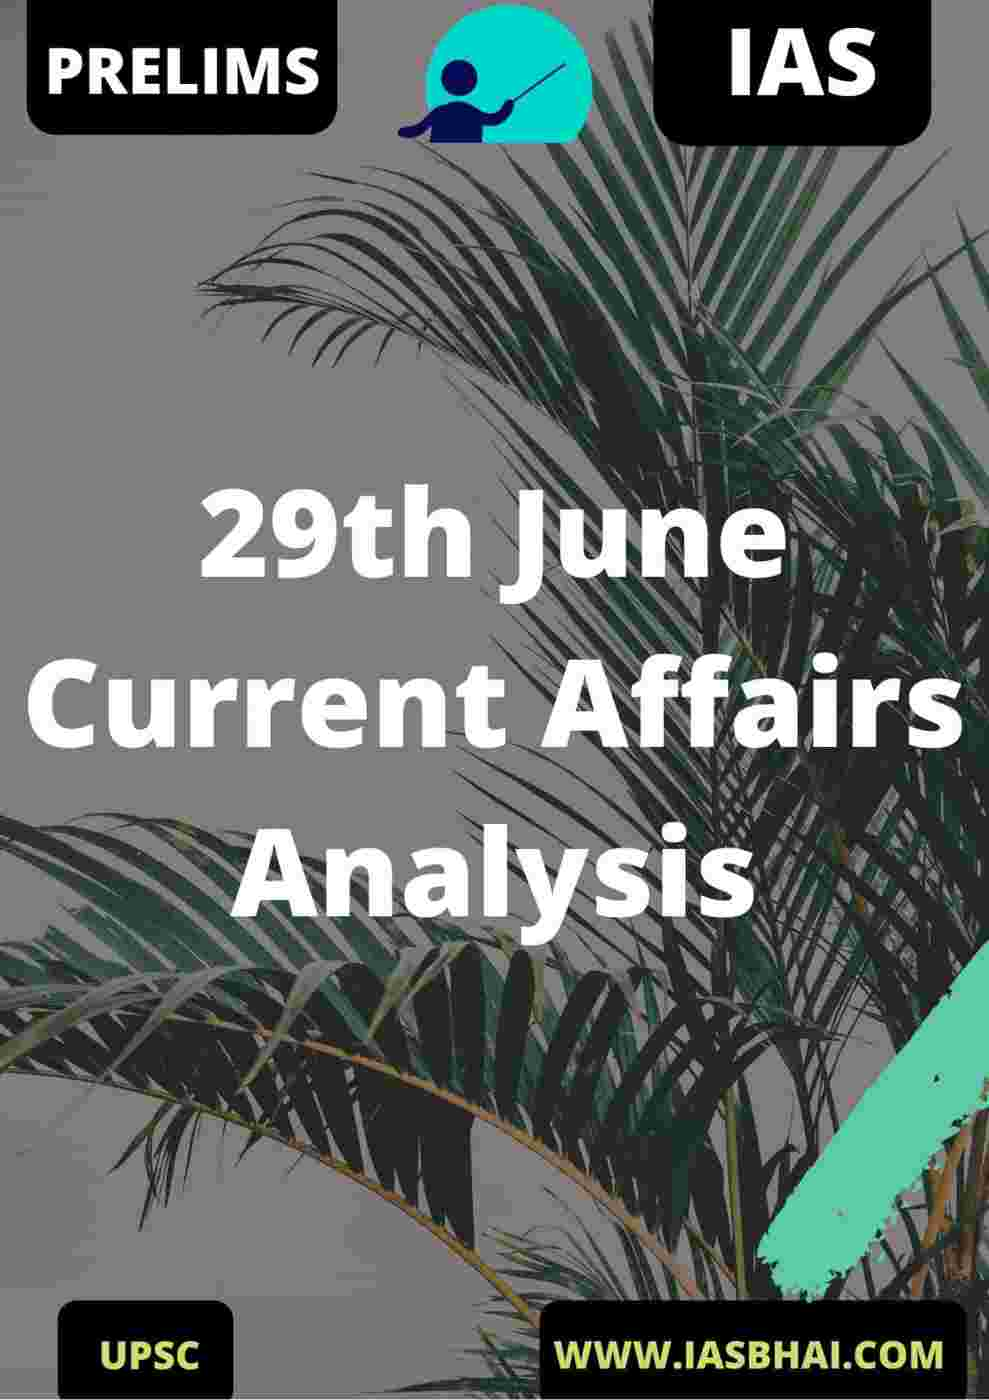 29th June Current Affairs News Analysis Prelims & Mains 2020